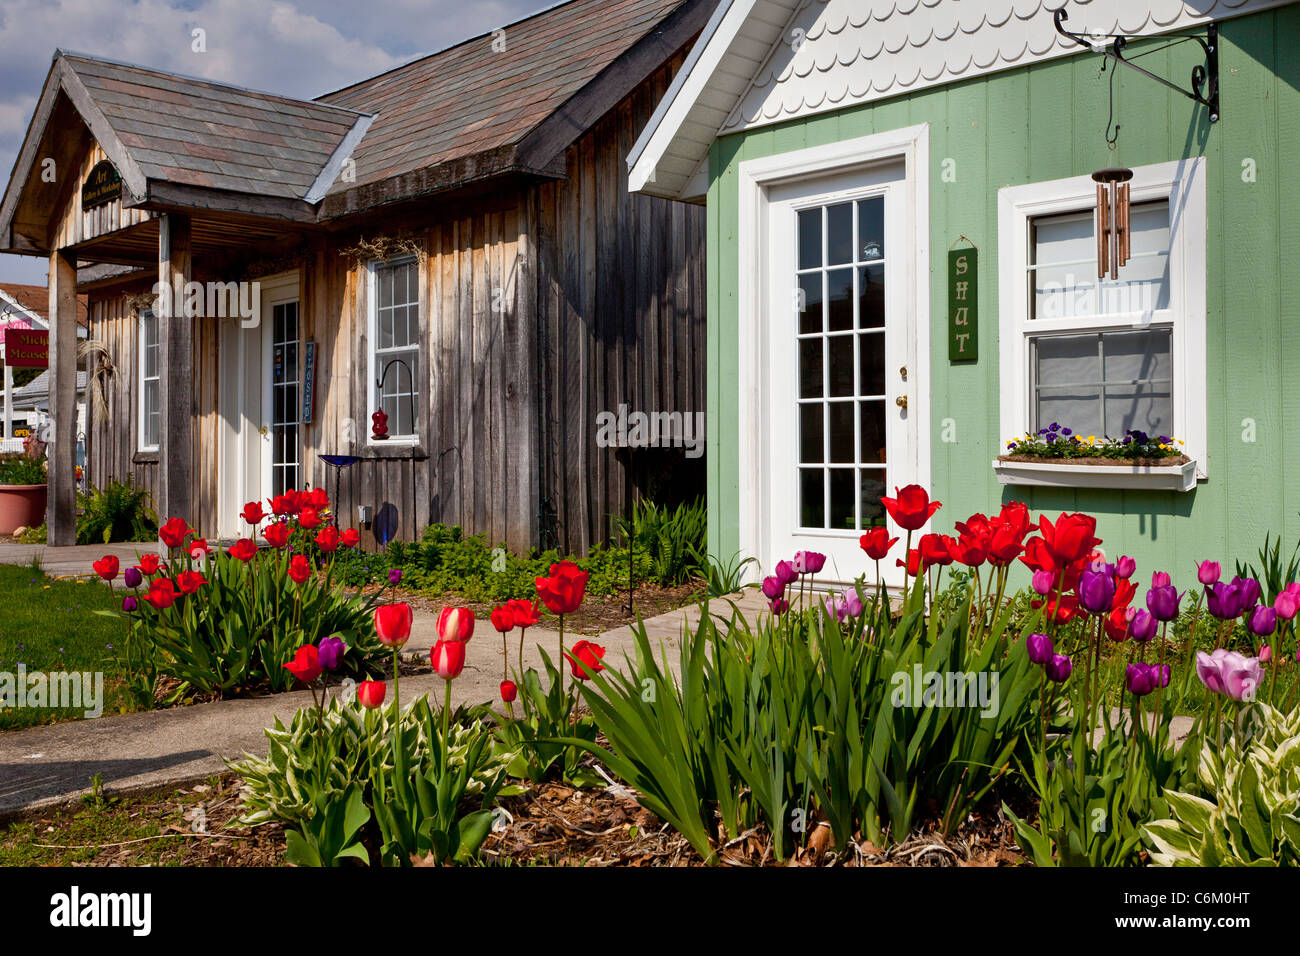 Small cottages with tulip garden display in Shipshewana, Indiana, USA. - Stock Image